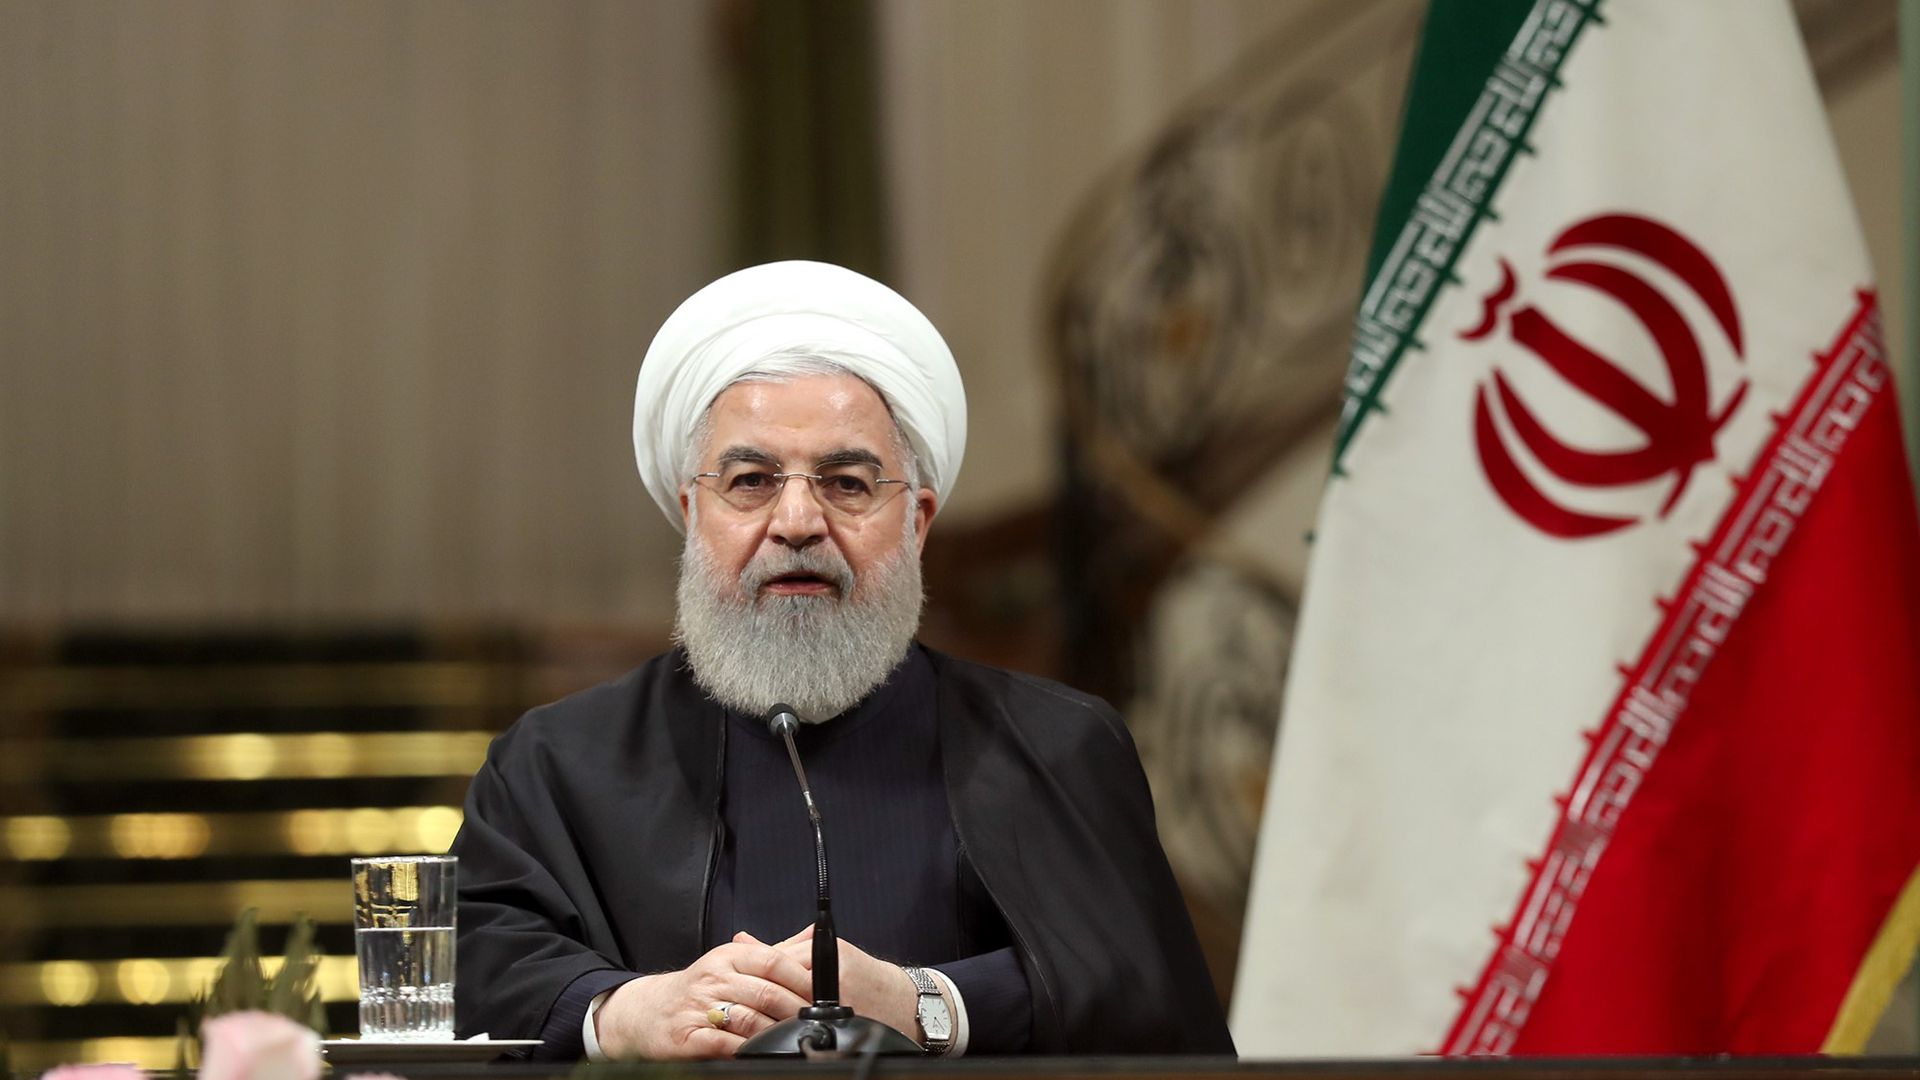 Hassan Rouhani seated at a press conference